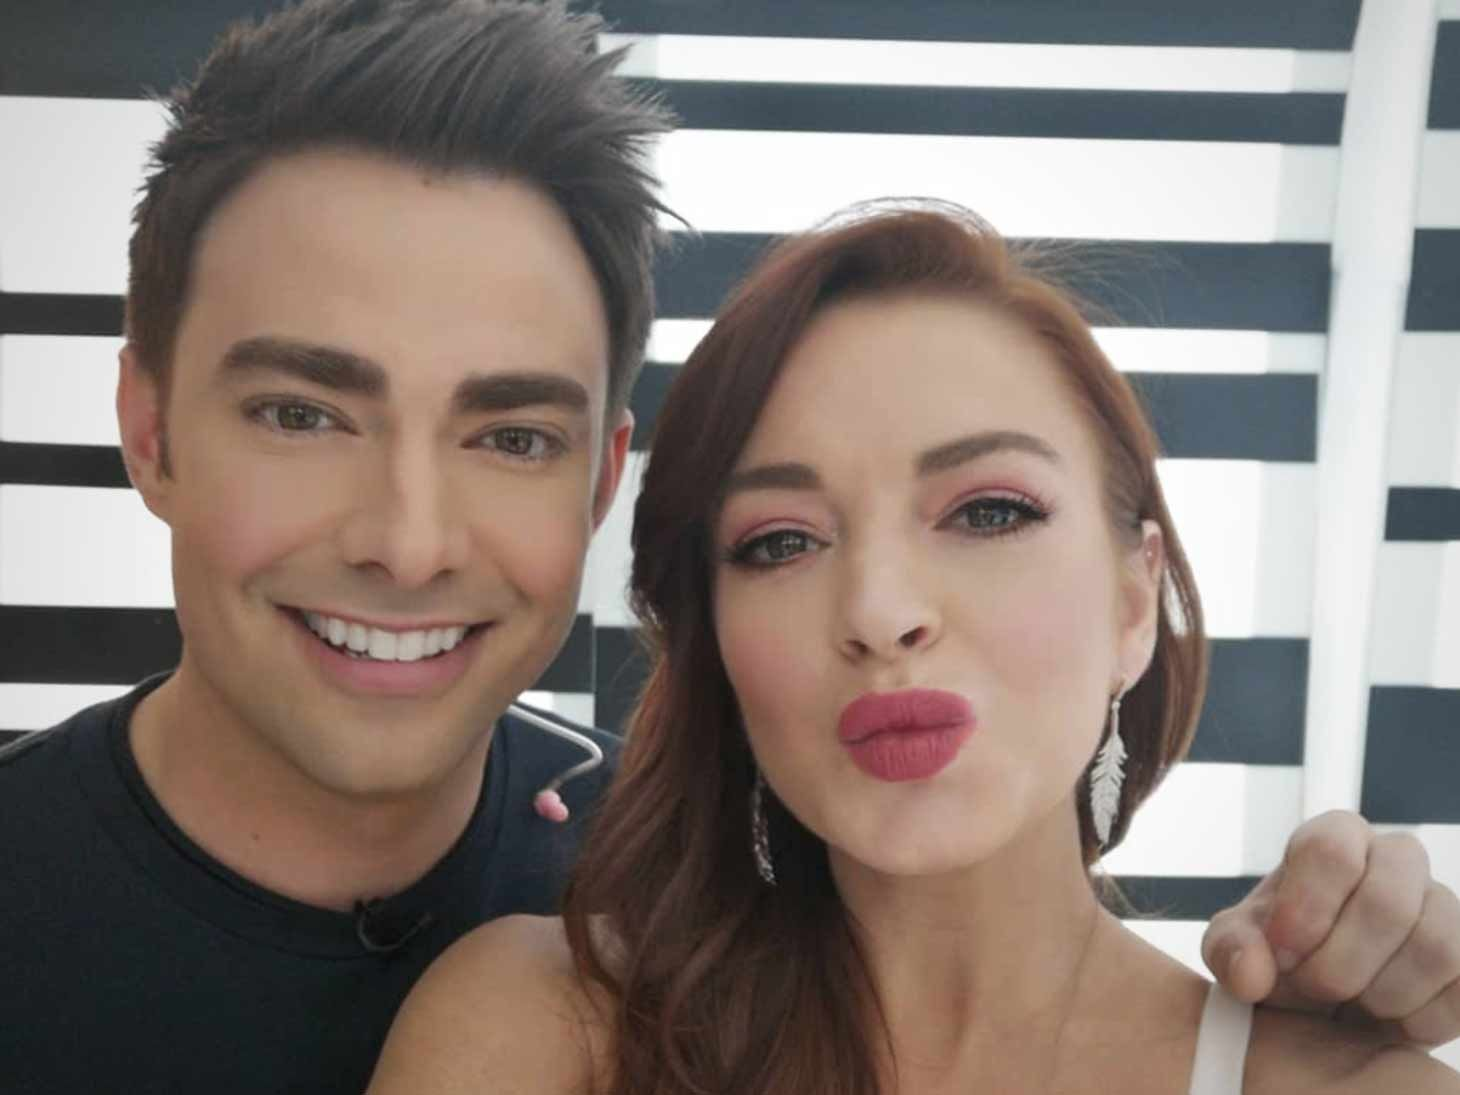 jonathan-bennett-says-his-mean-girls-fans-supported-him-a-lot-when-he-came-out-heres-how